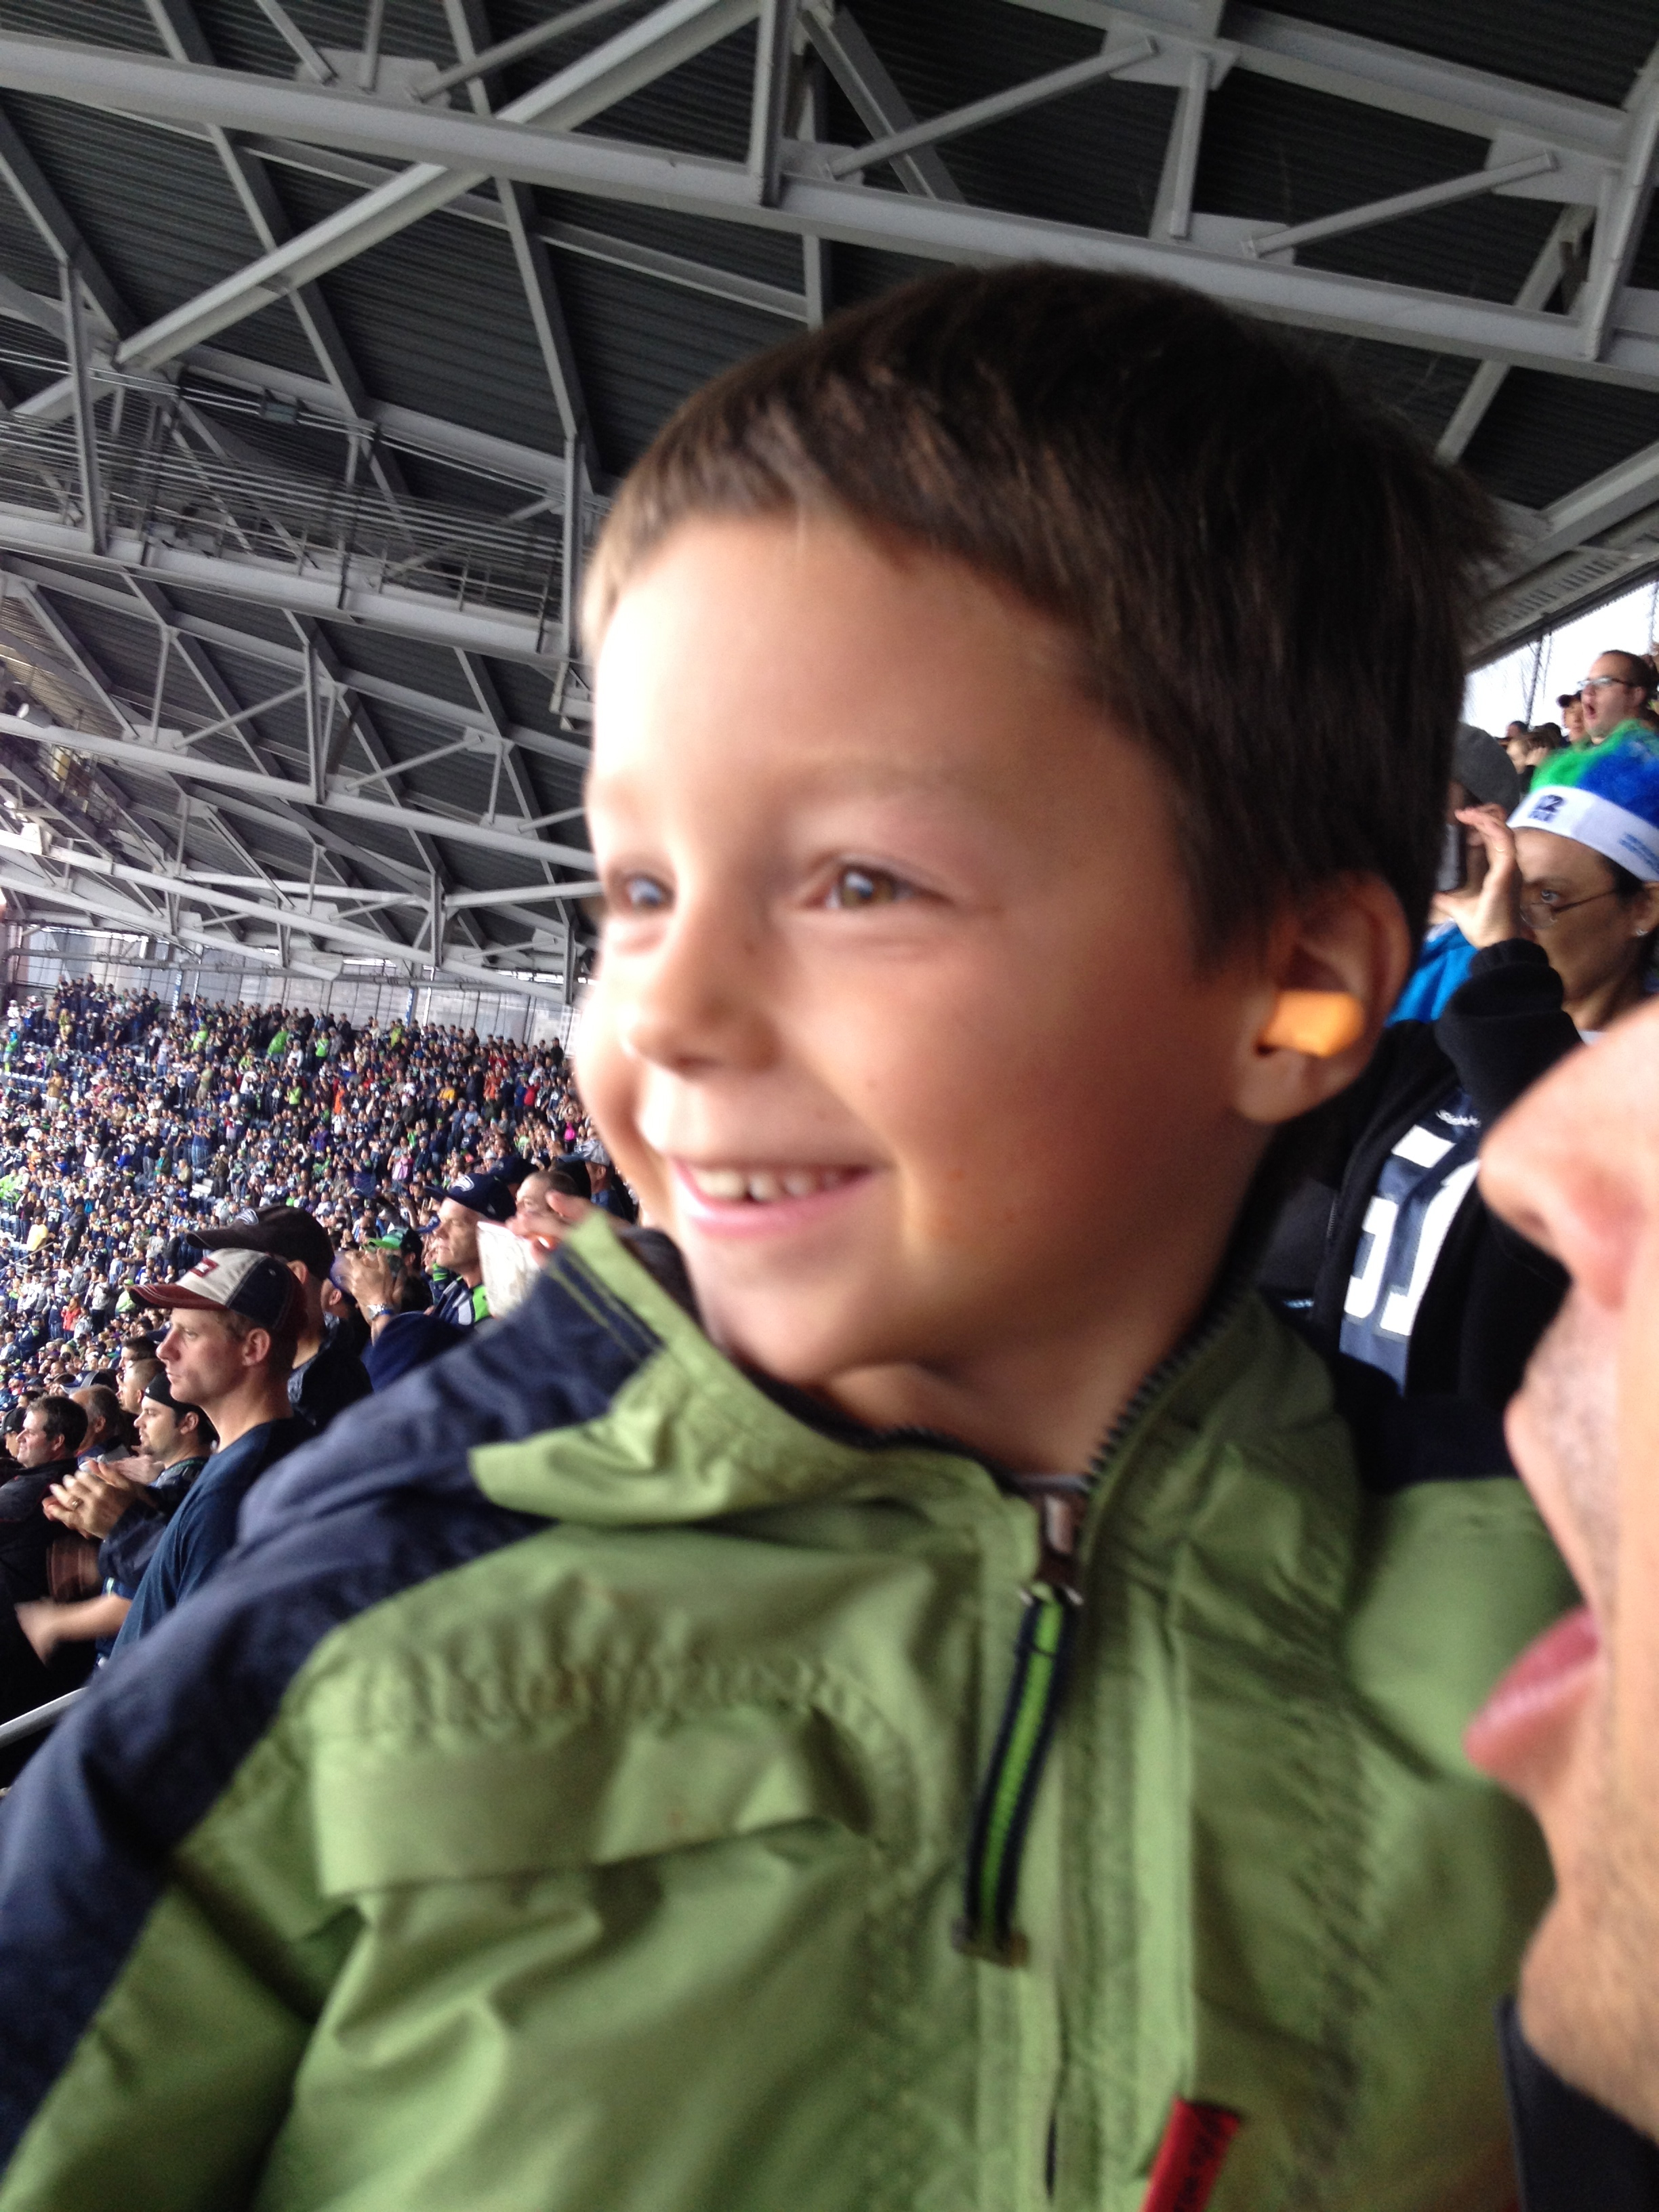 Seahawks Game Ear Plugs Prevent Noise Damage Kids